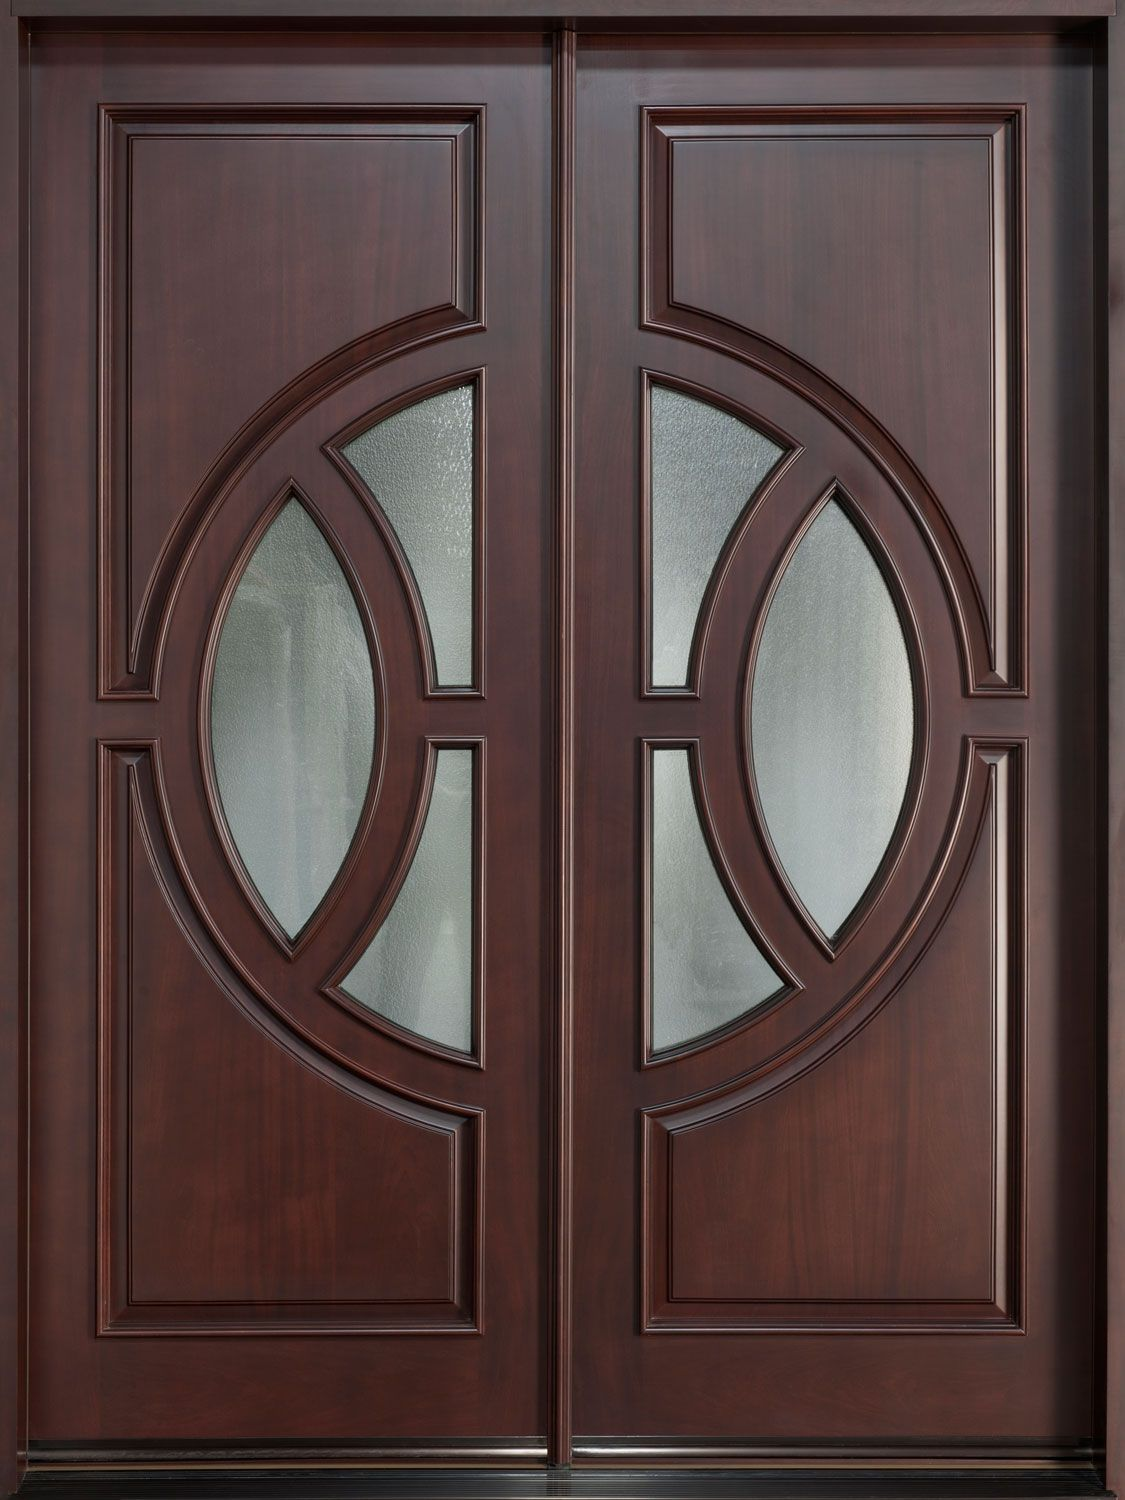 Elegant Front Entry Doors. Elegant Double Entry Doors With Side Light    Google Search Front